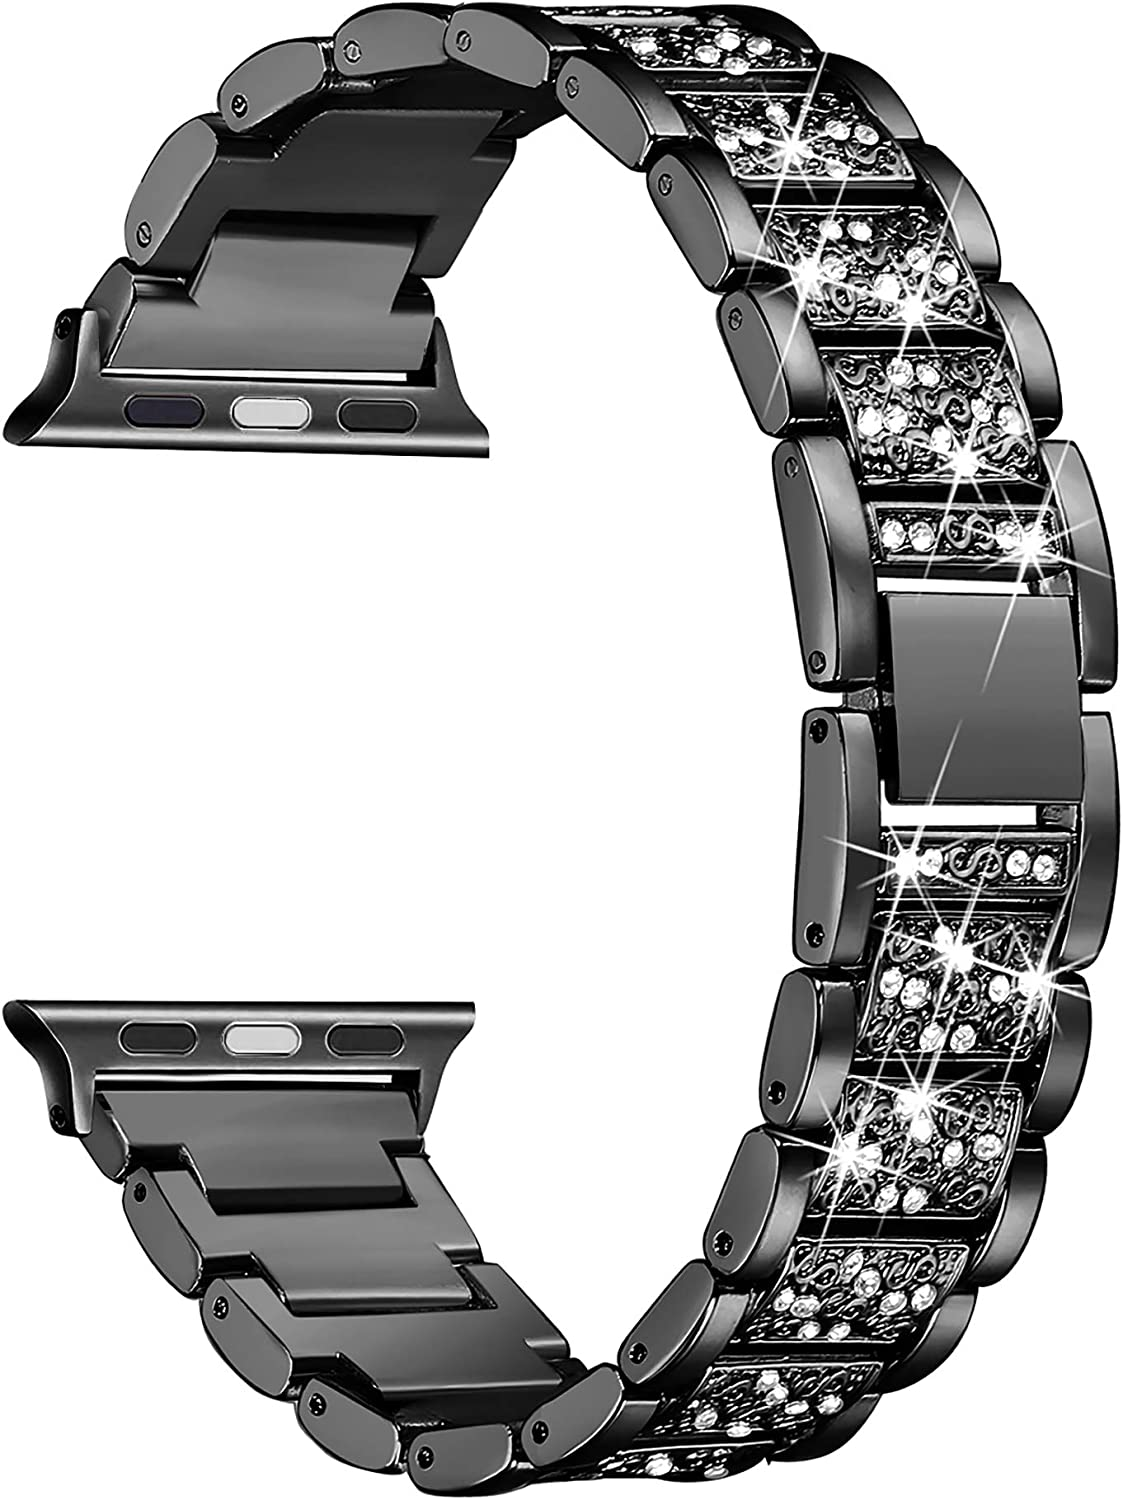 Secbolt Bling Bands Compatible with Apple Watch Band 38mm 40mm iWatch SE Series 6/5/4/3/2/1, Dressy Jewelry Metal Bracelet Adjustable Wristband, Black